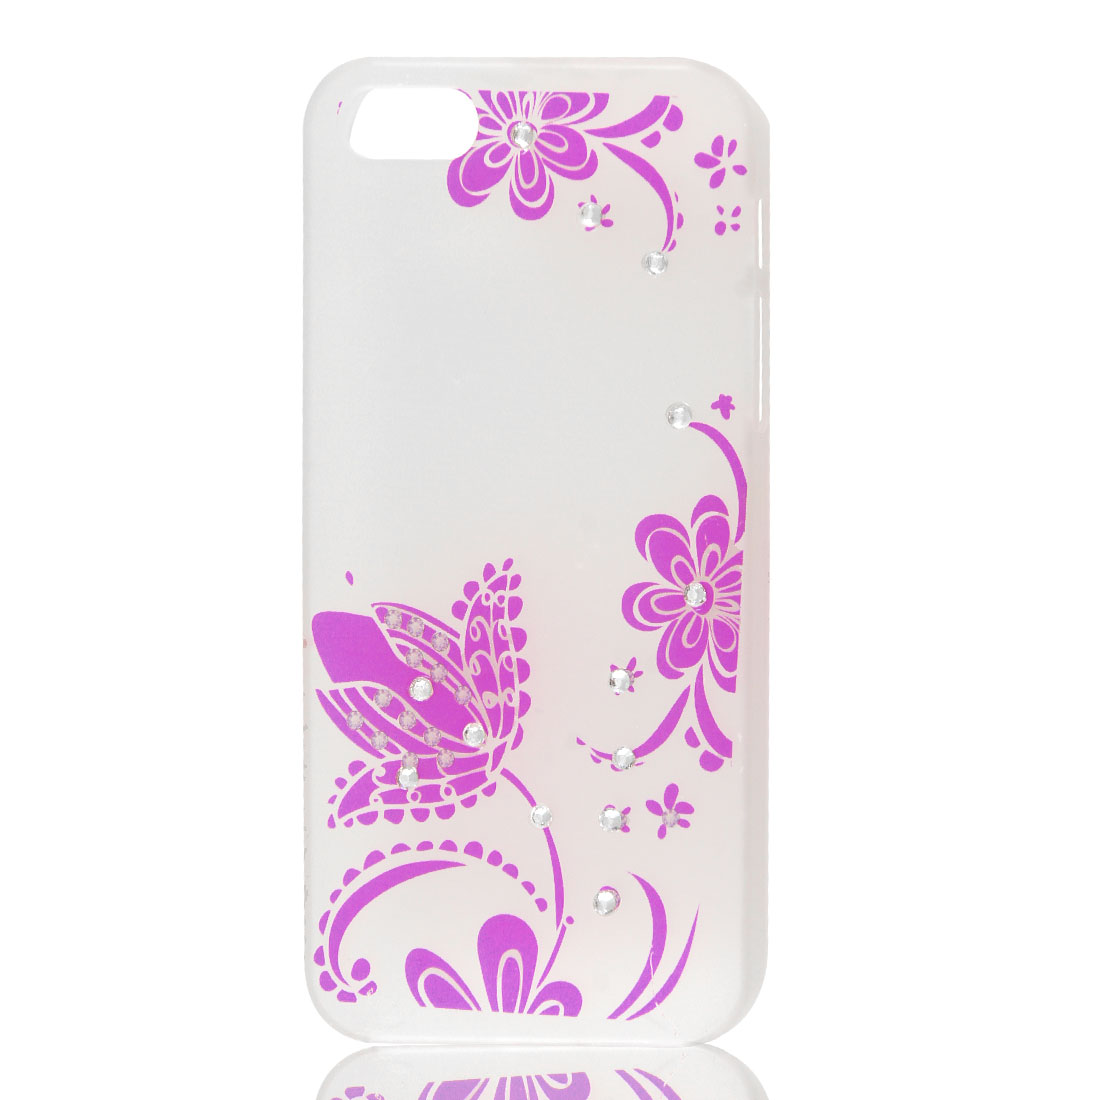 Fuchsia Floral Bling Glitter Rhinestone Hard Back Case Cover for iPhone 5 5G